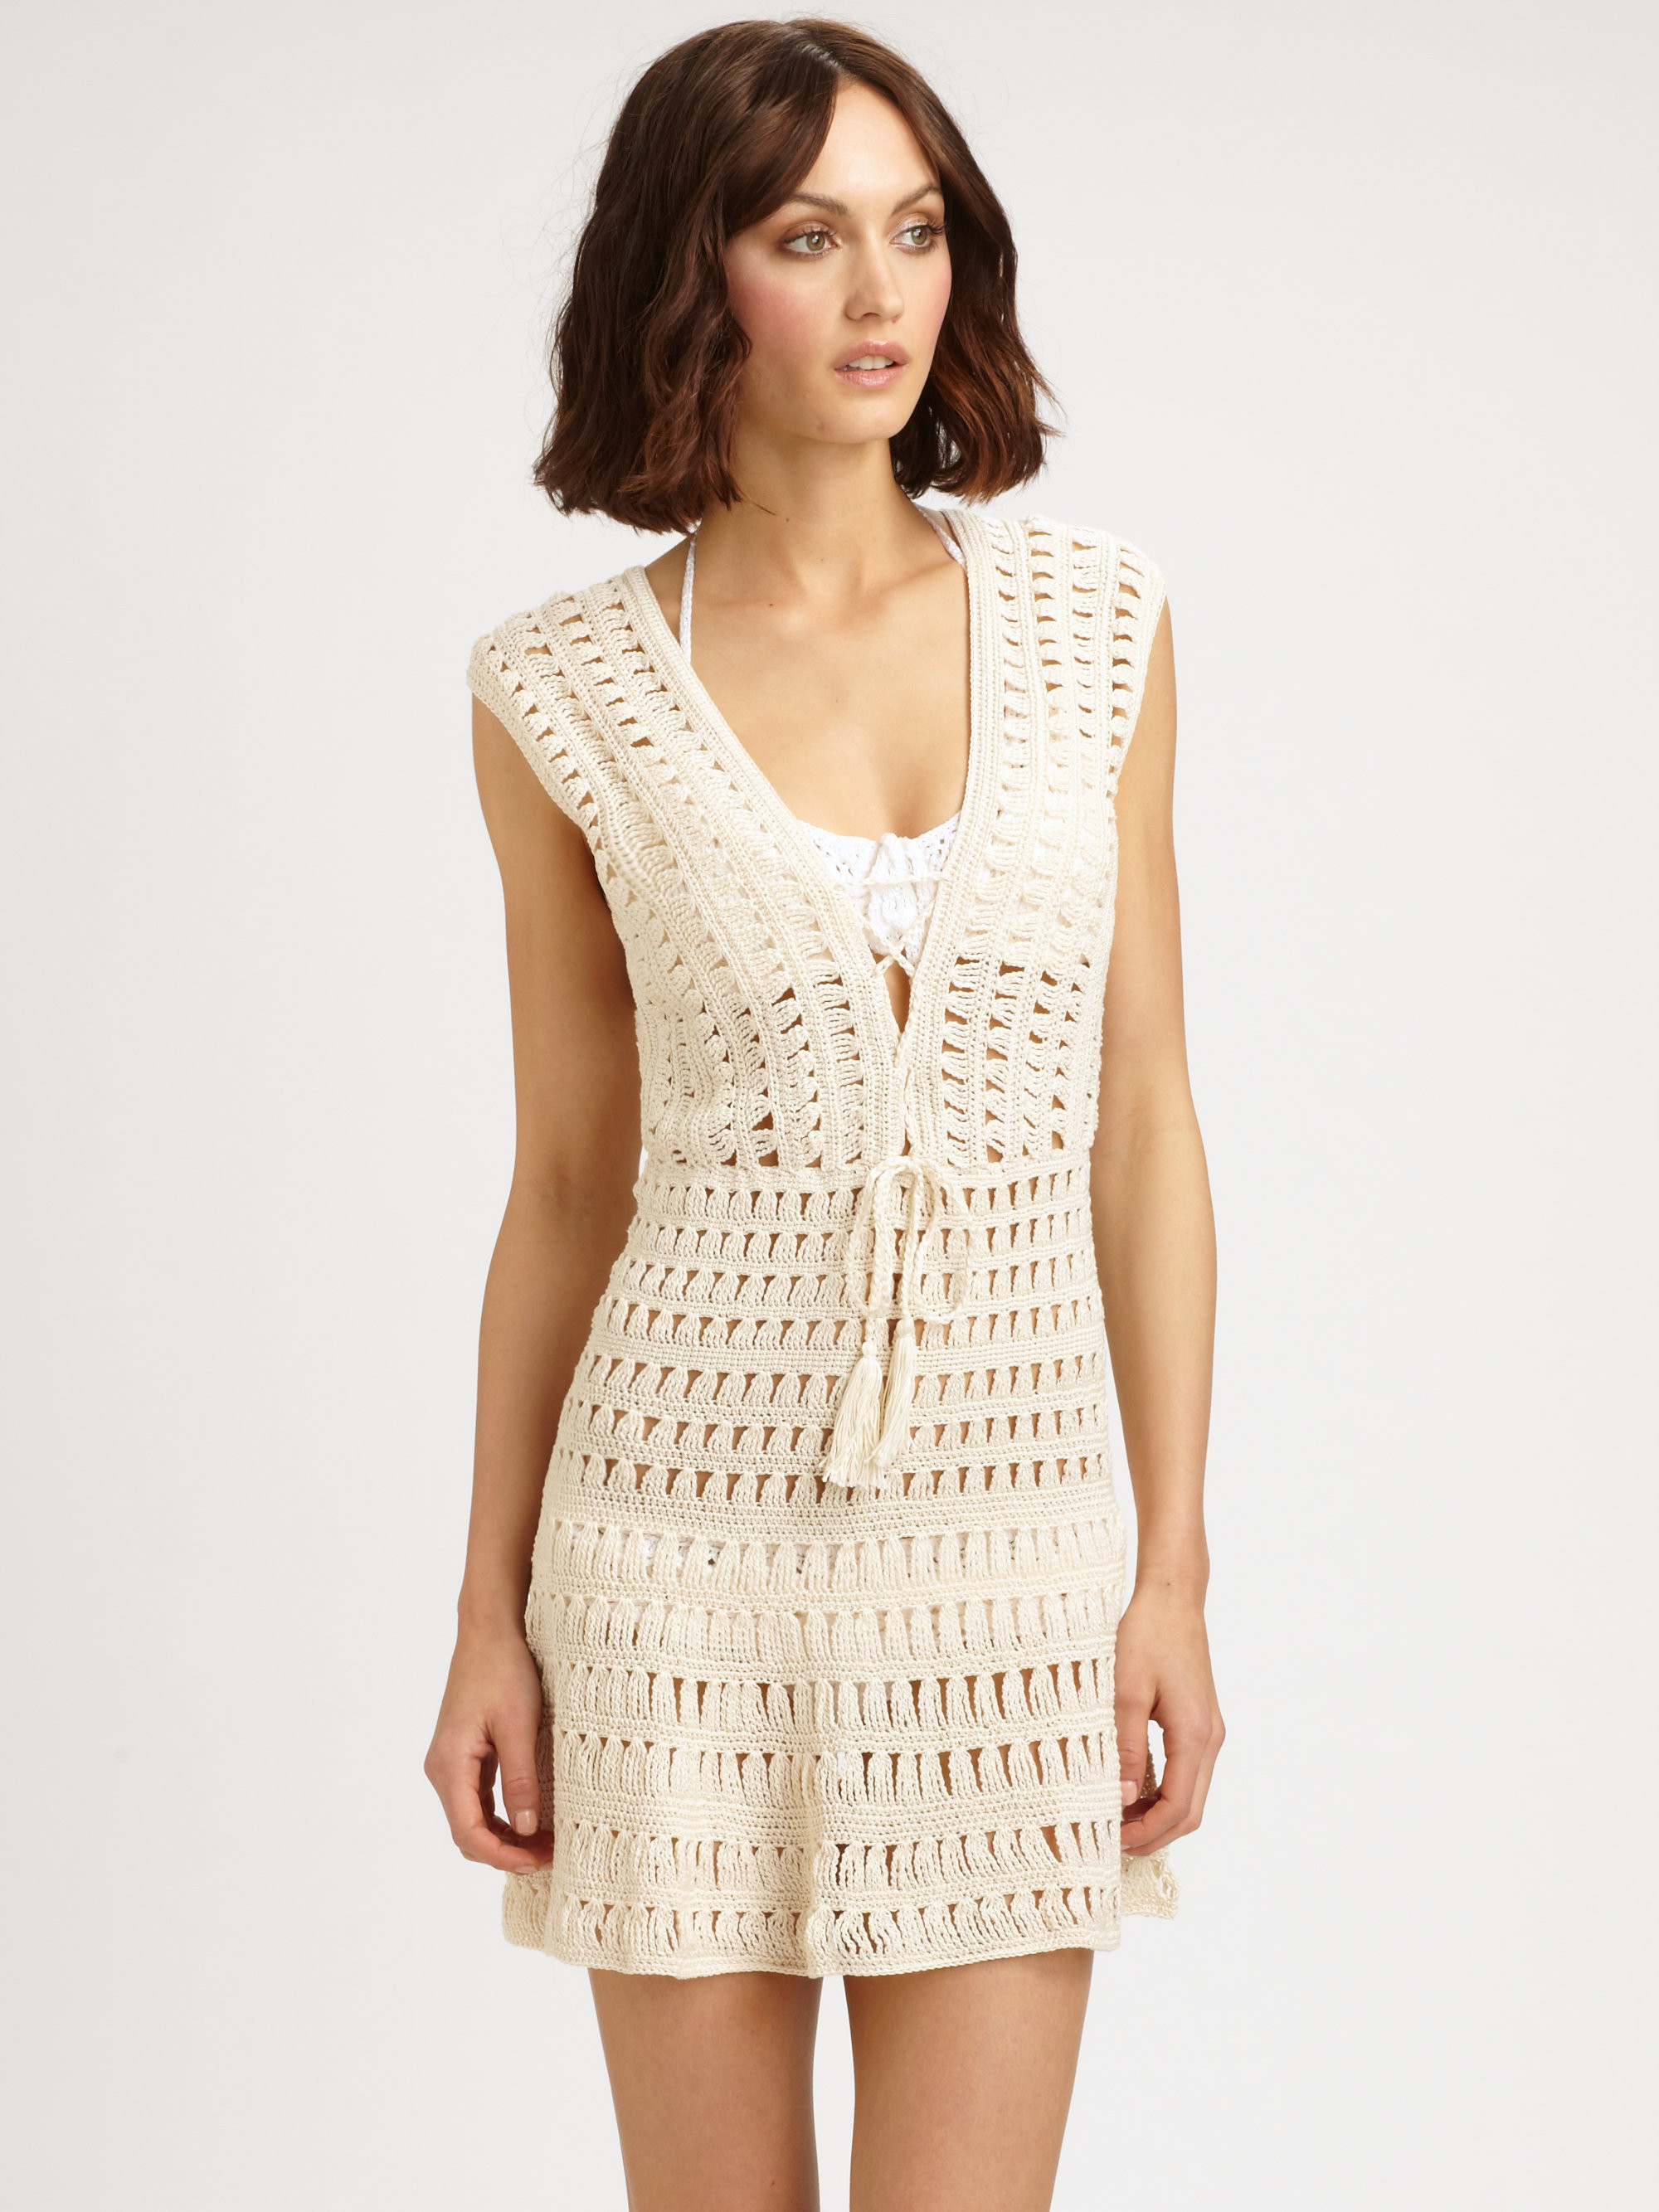 Lyst Anna Kosturova Crochet Dress in White